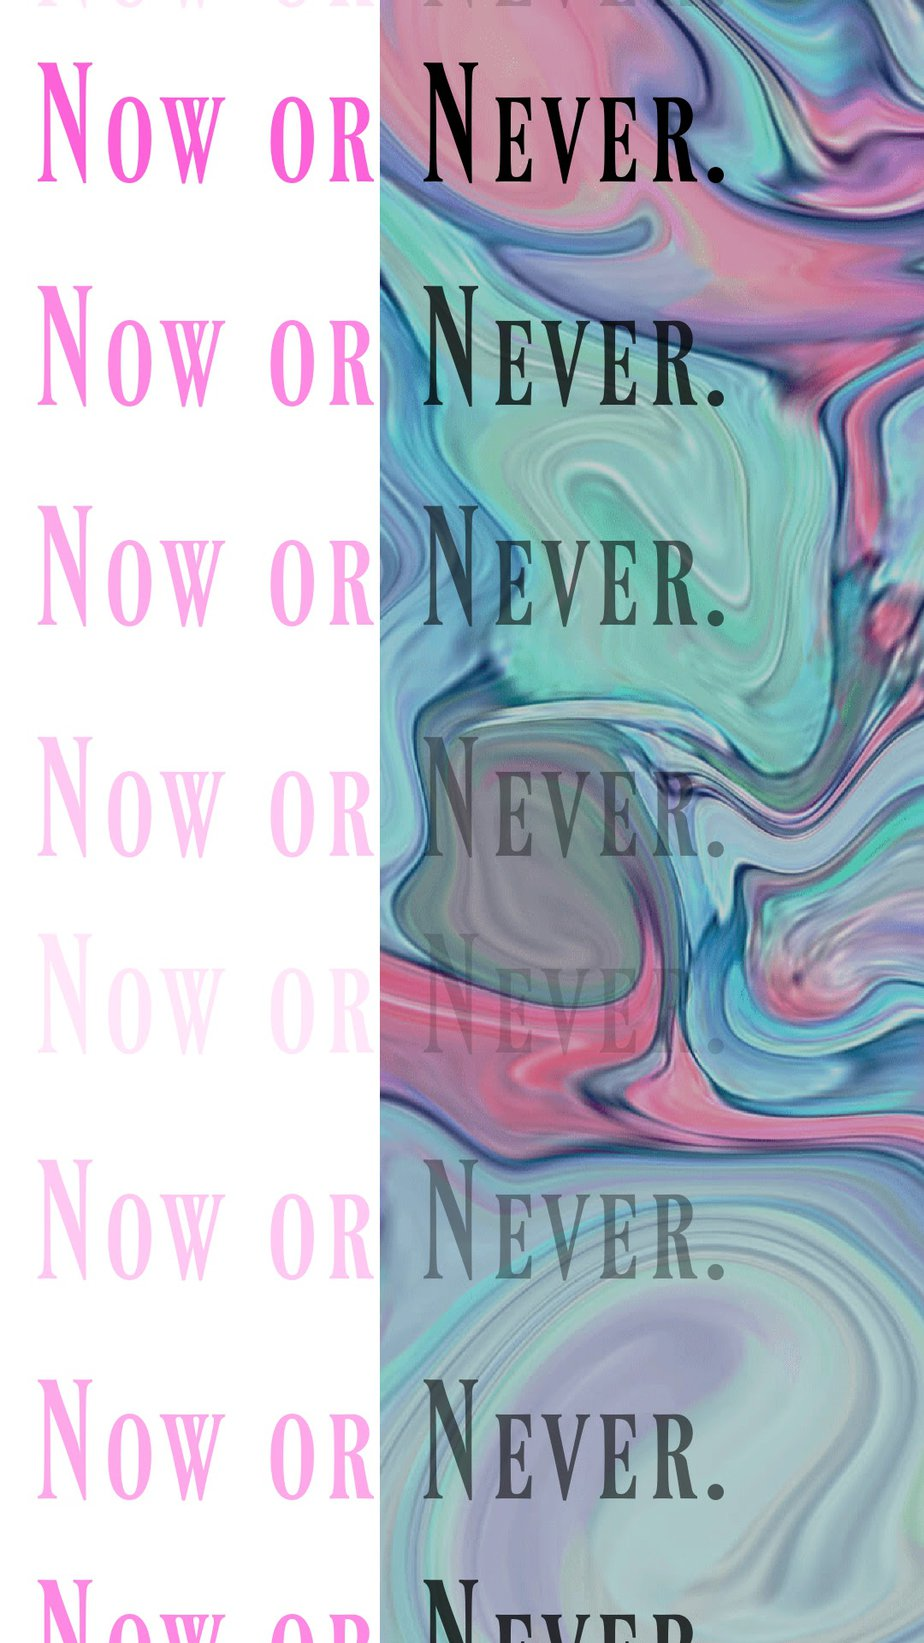 Best Aesthetic Phone Wallpaper Quotes About Now Now or never